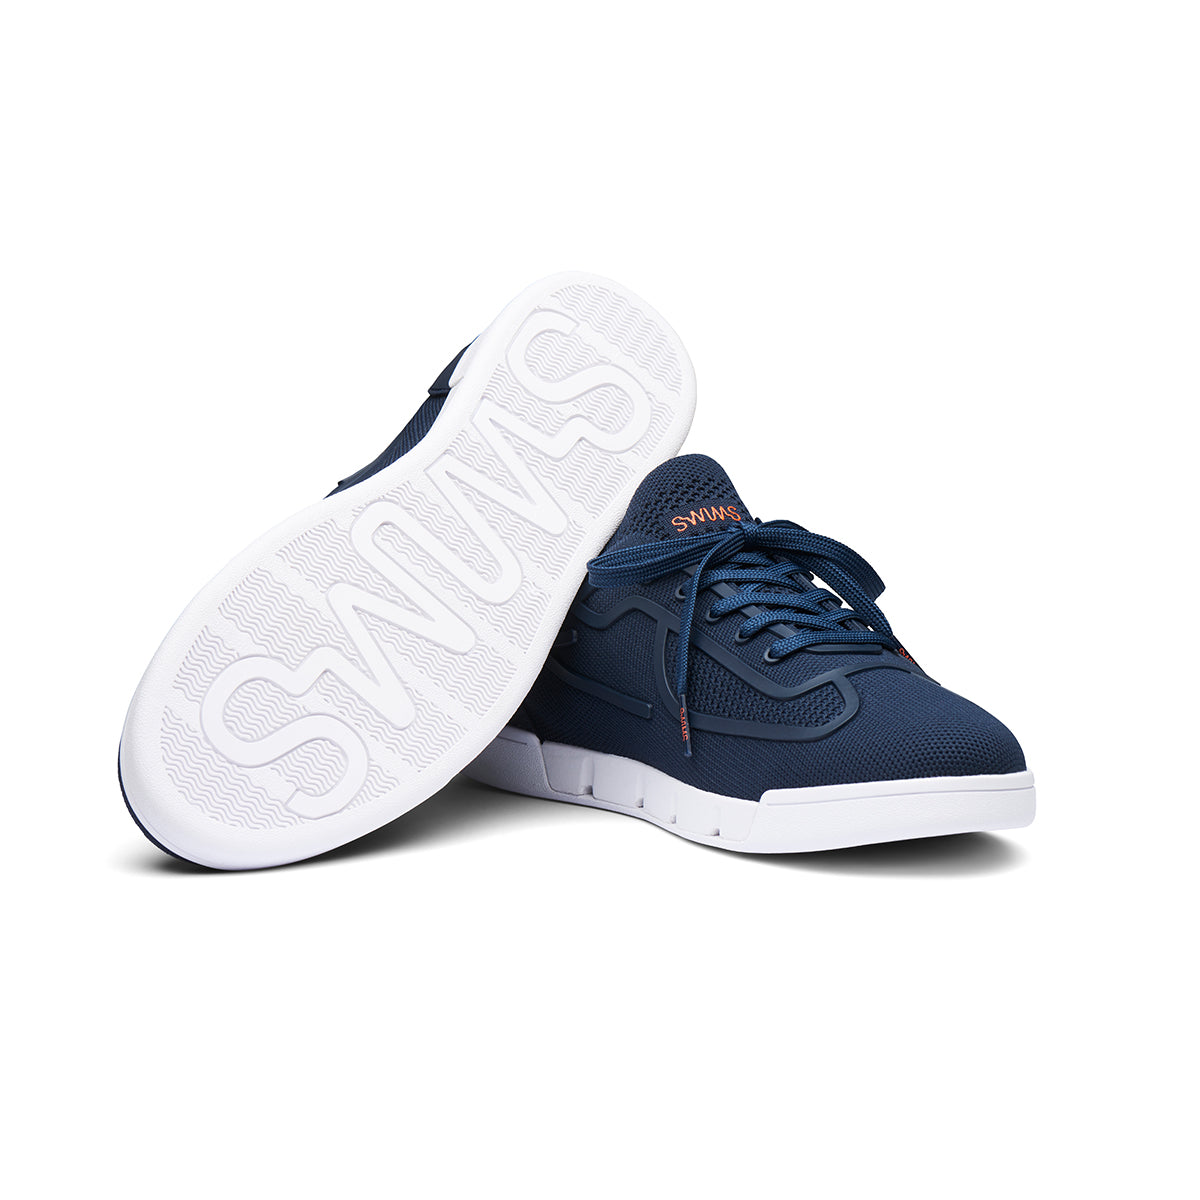 Breeze Flex Tennis - background::white,variant::Navy